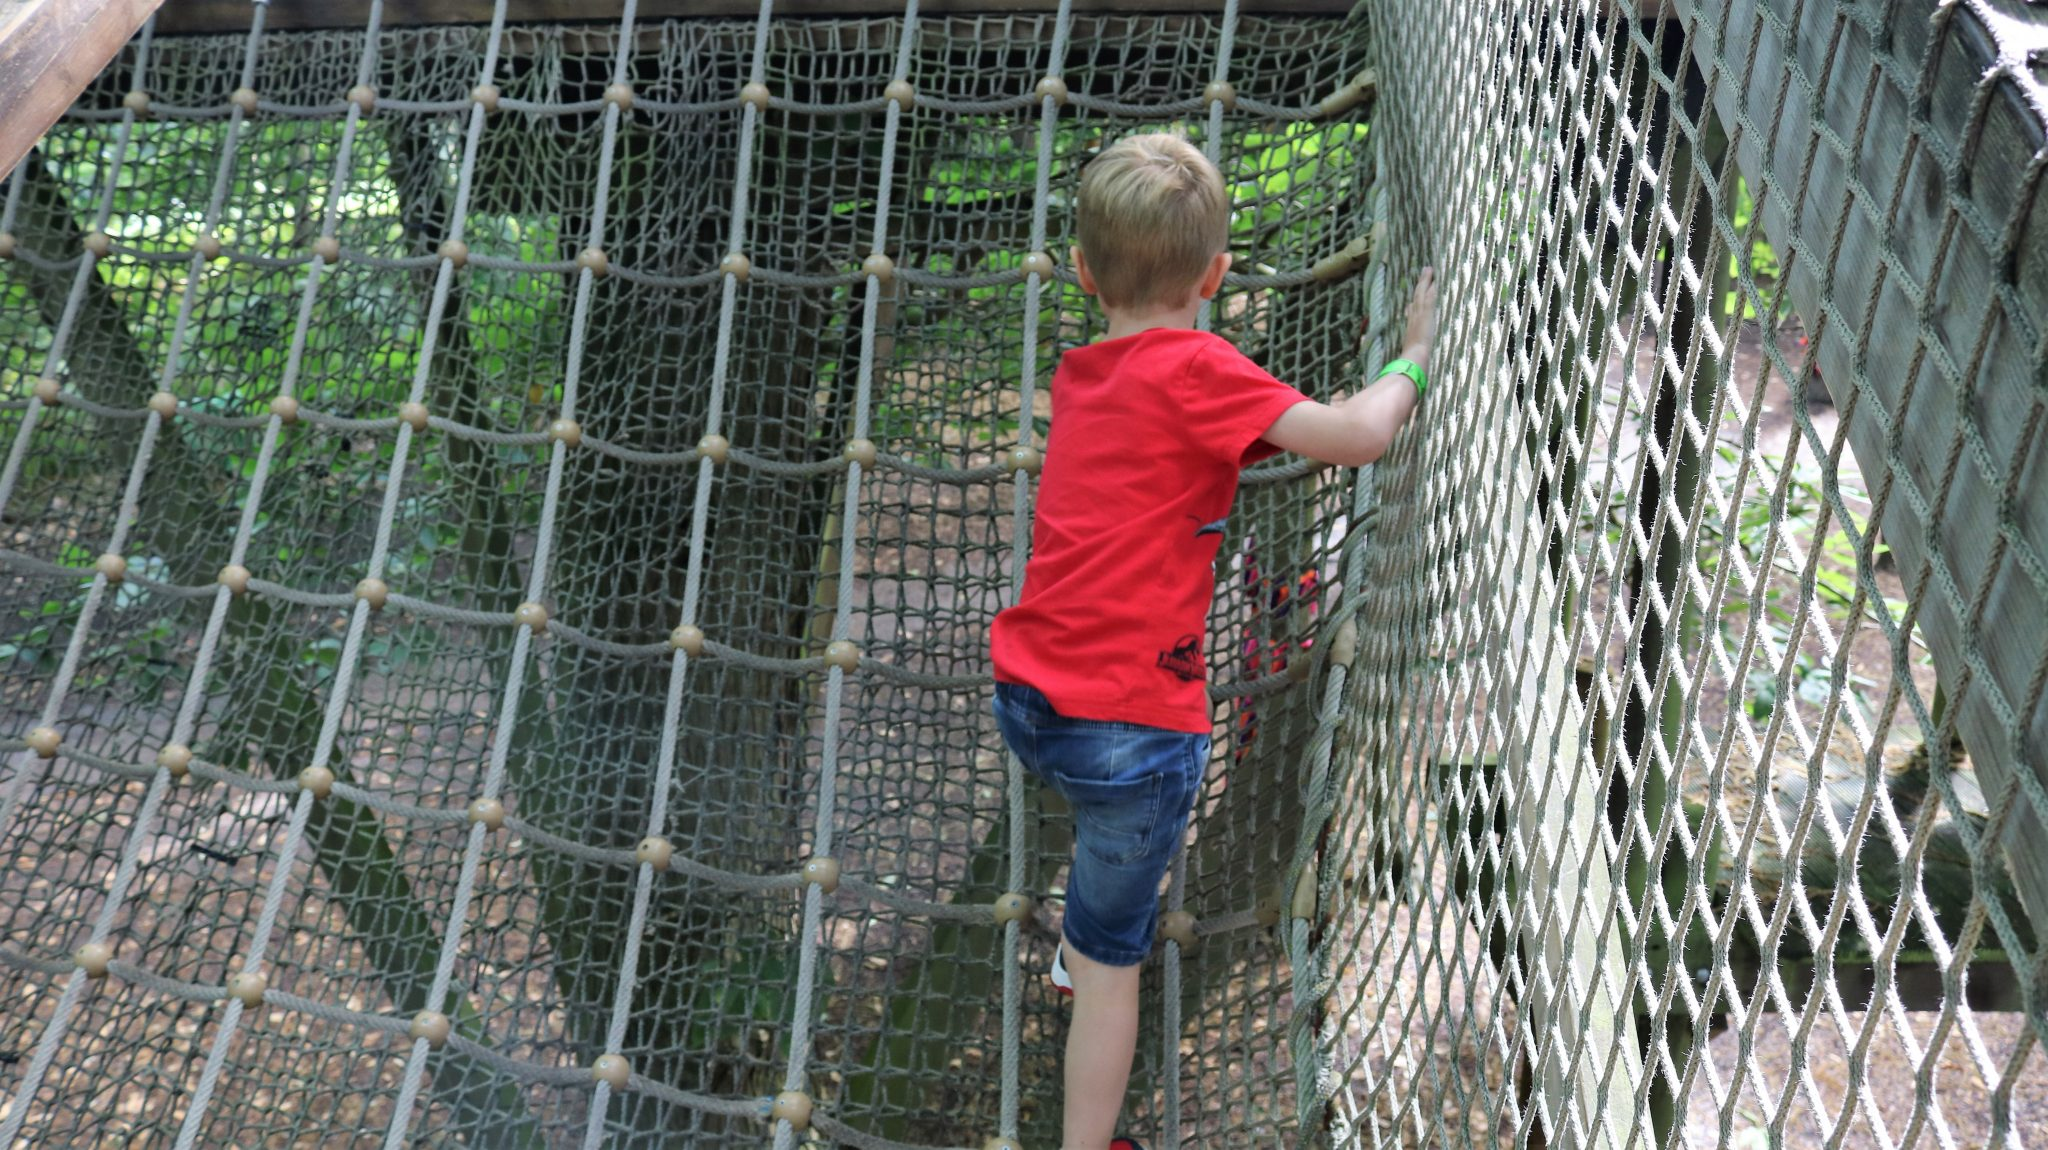 Climbing up the cargo net